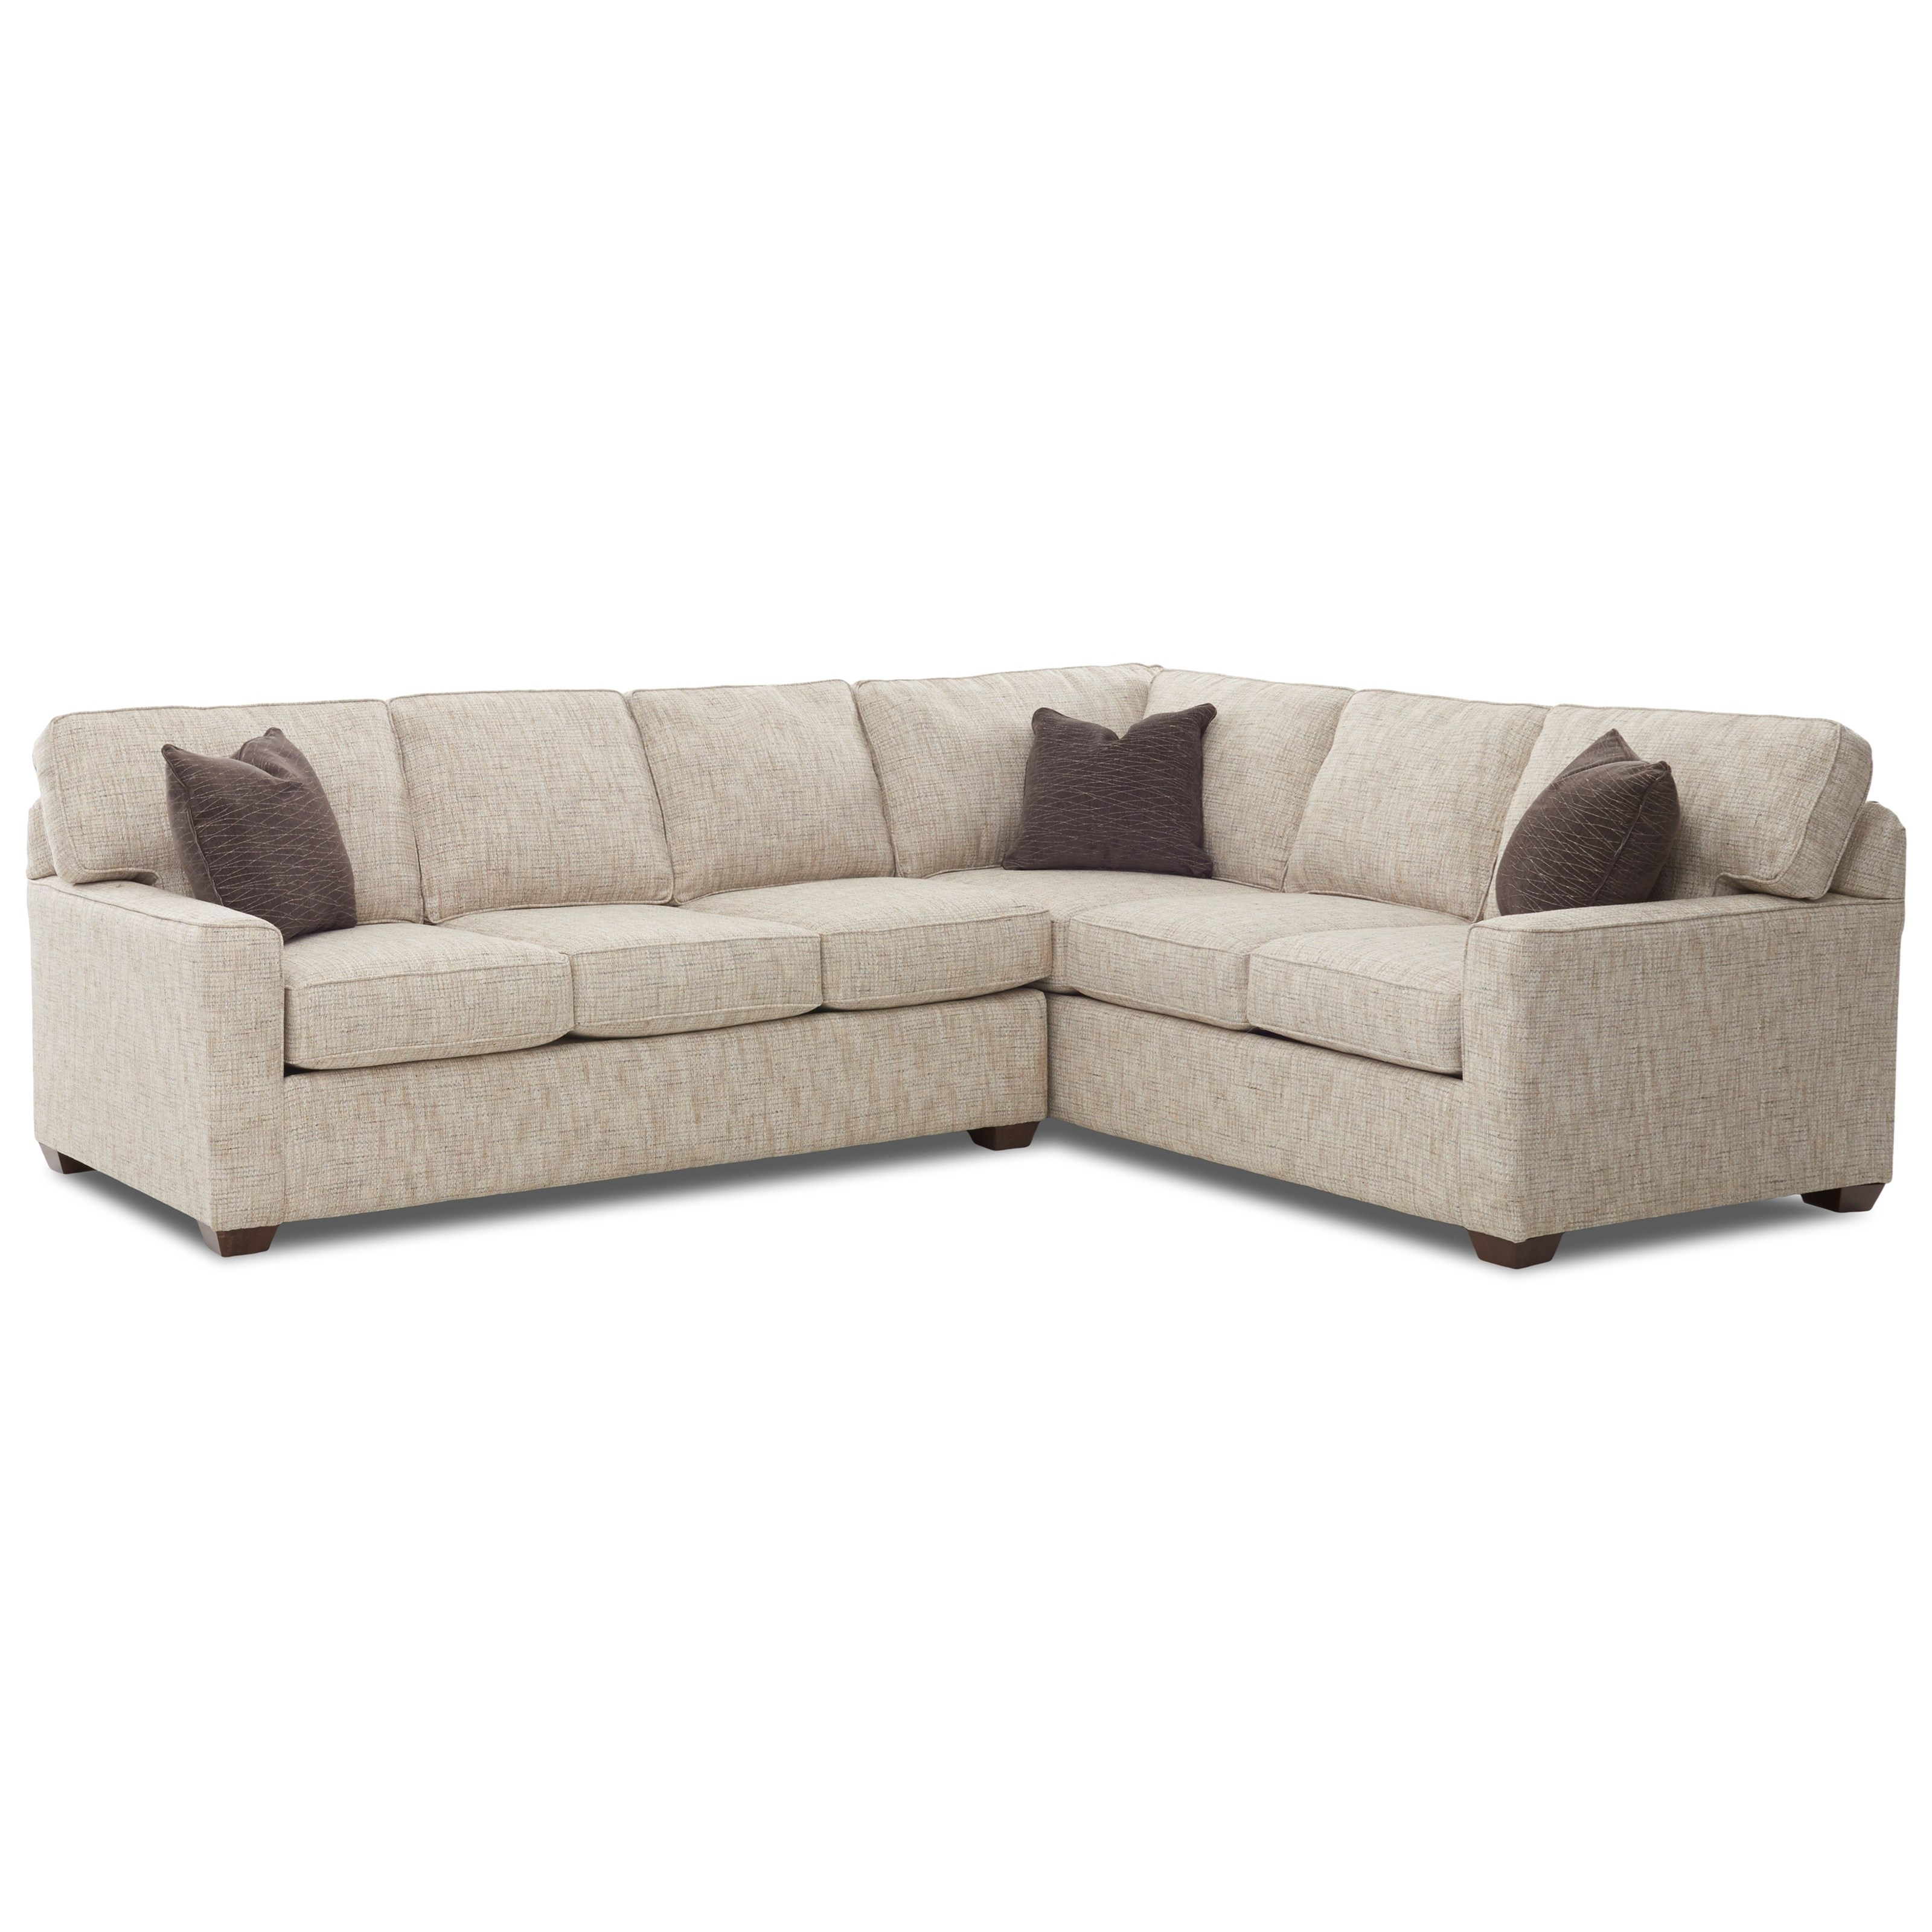 2 Piece Sectional Sofa with RAF Corner Sofa by Klaussner | Wolf ...